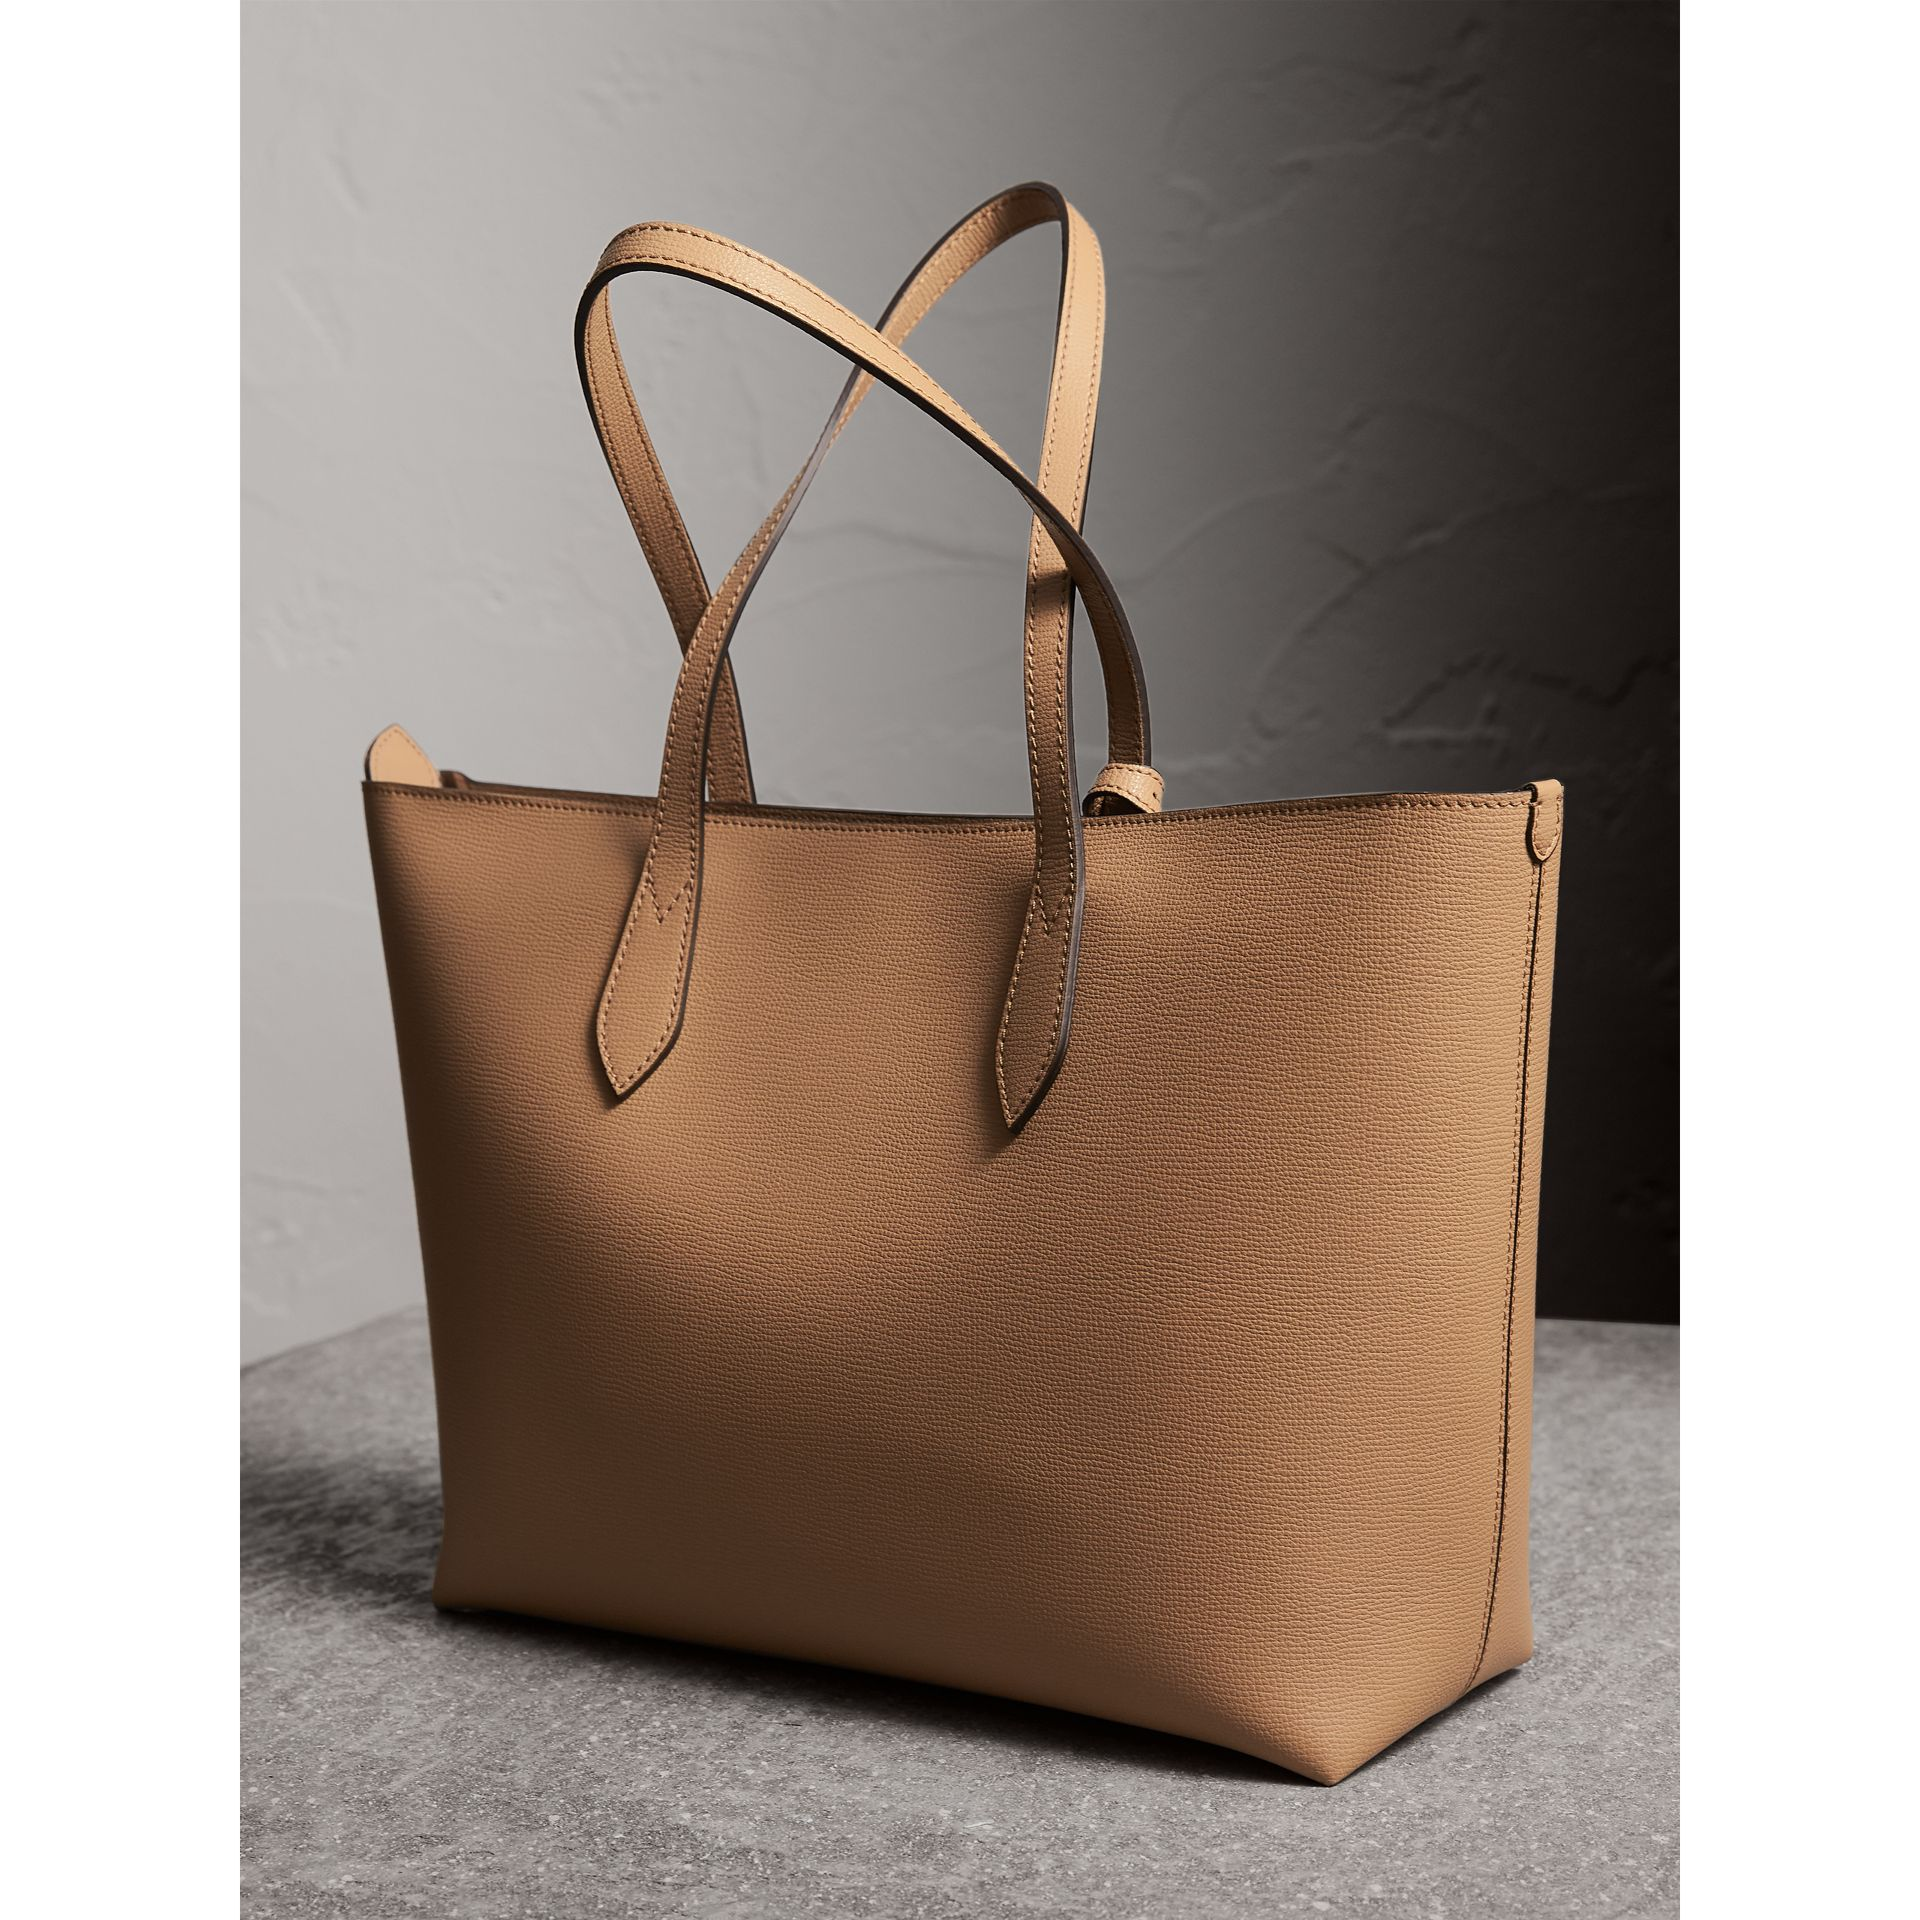 Medium Coated Leather Tote in Mid Camel - Women | Burberry Canada - gallery image 3